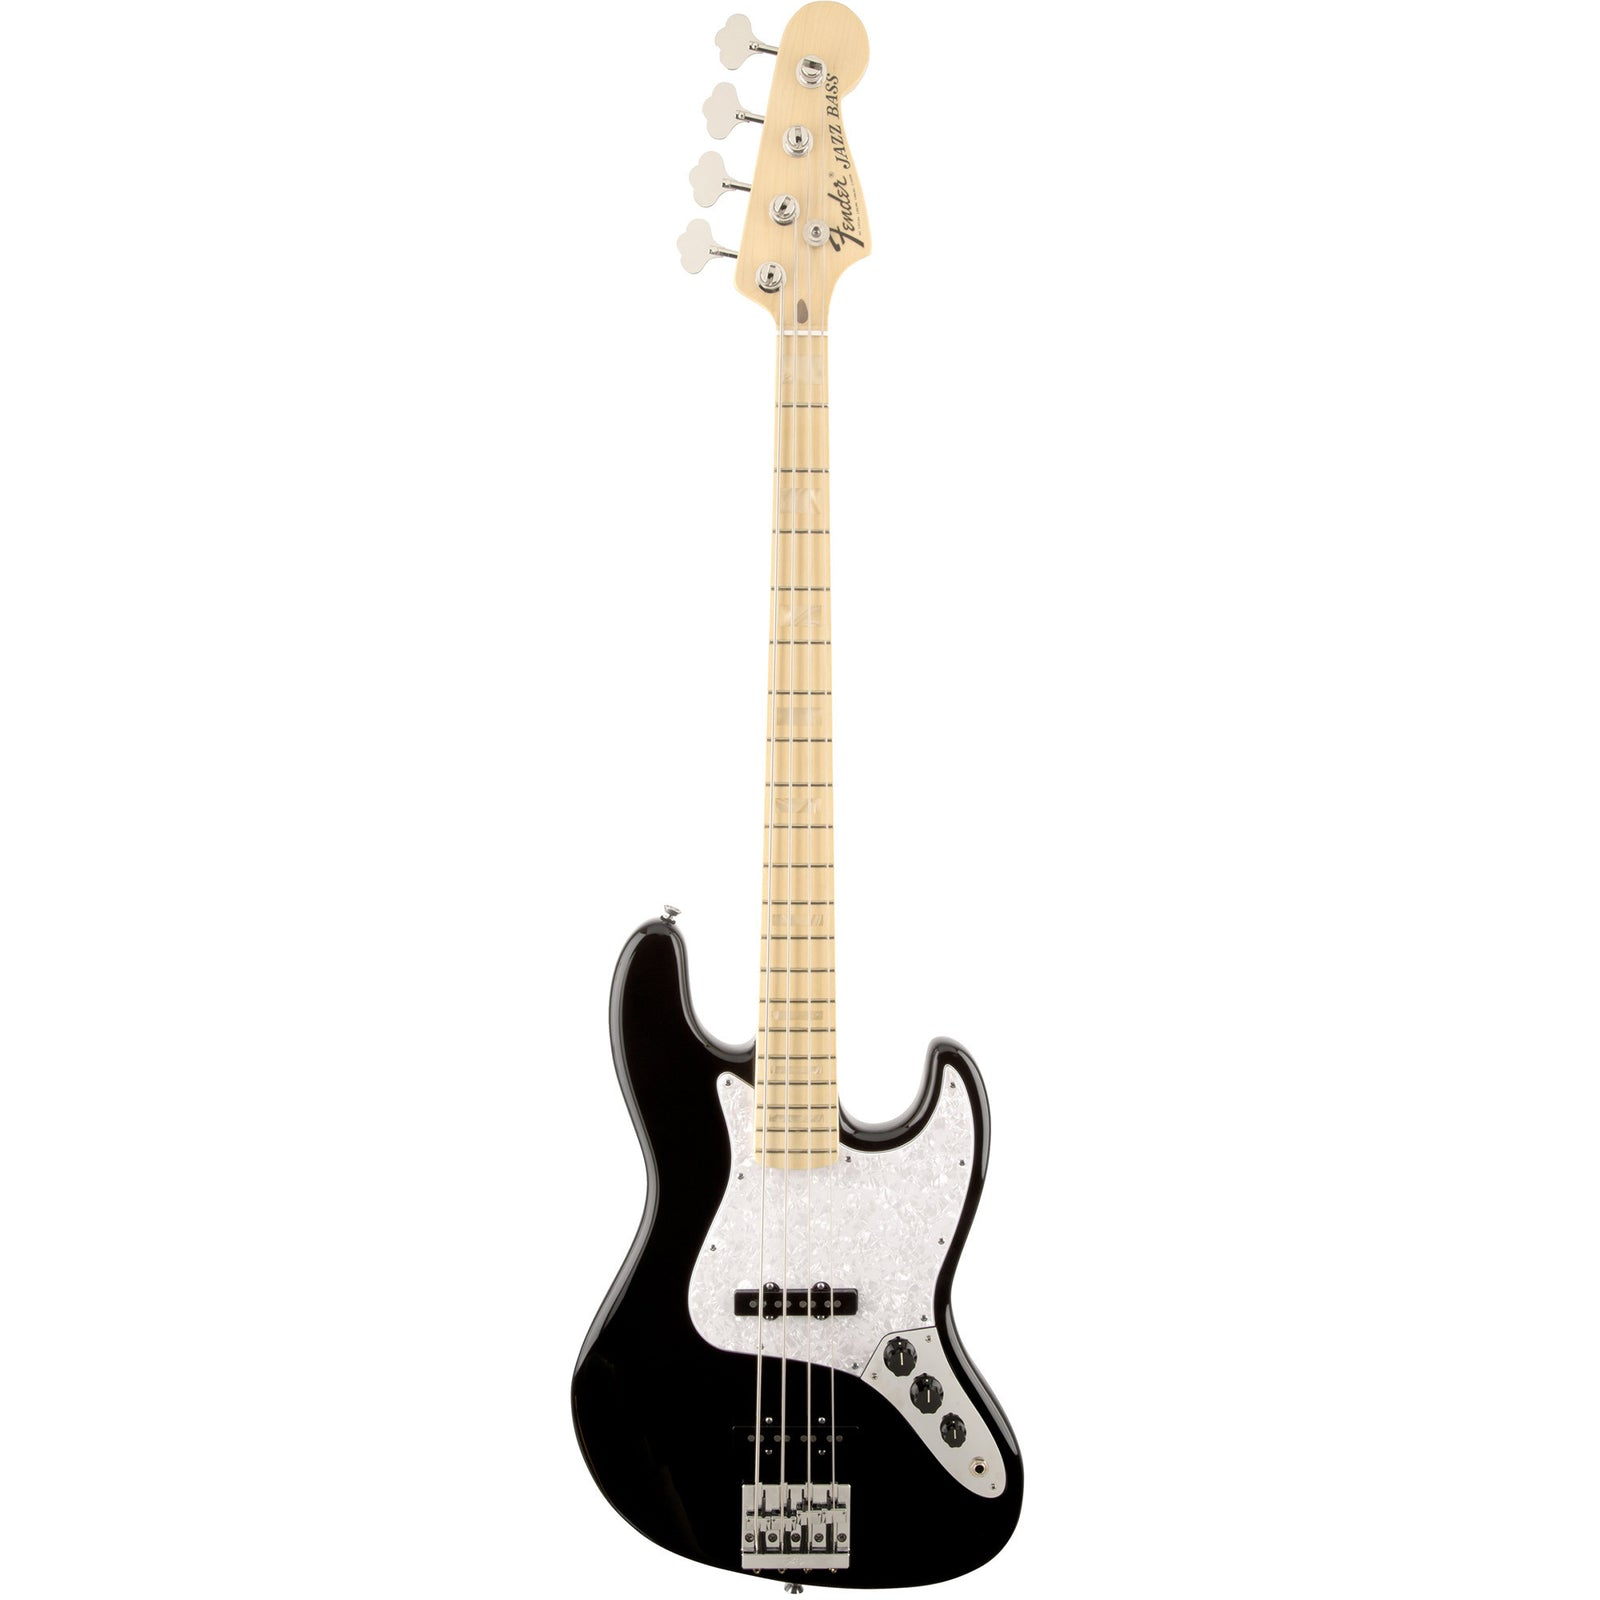 Fender U.S. Geddy Lee Jazz Bass - Black